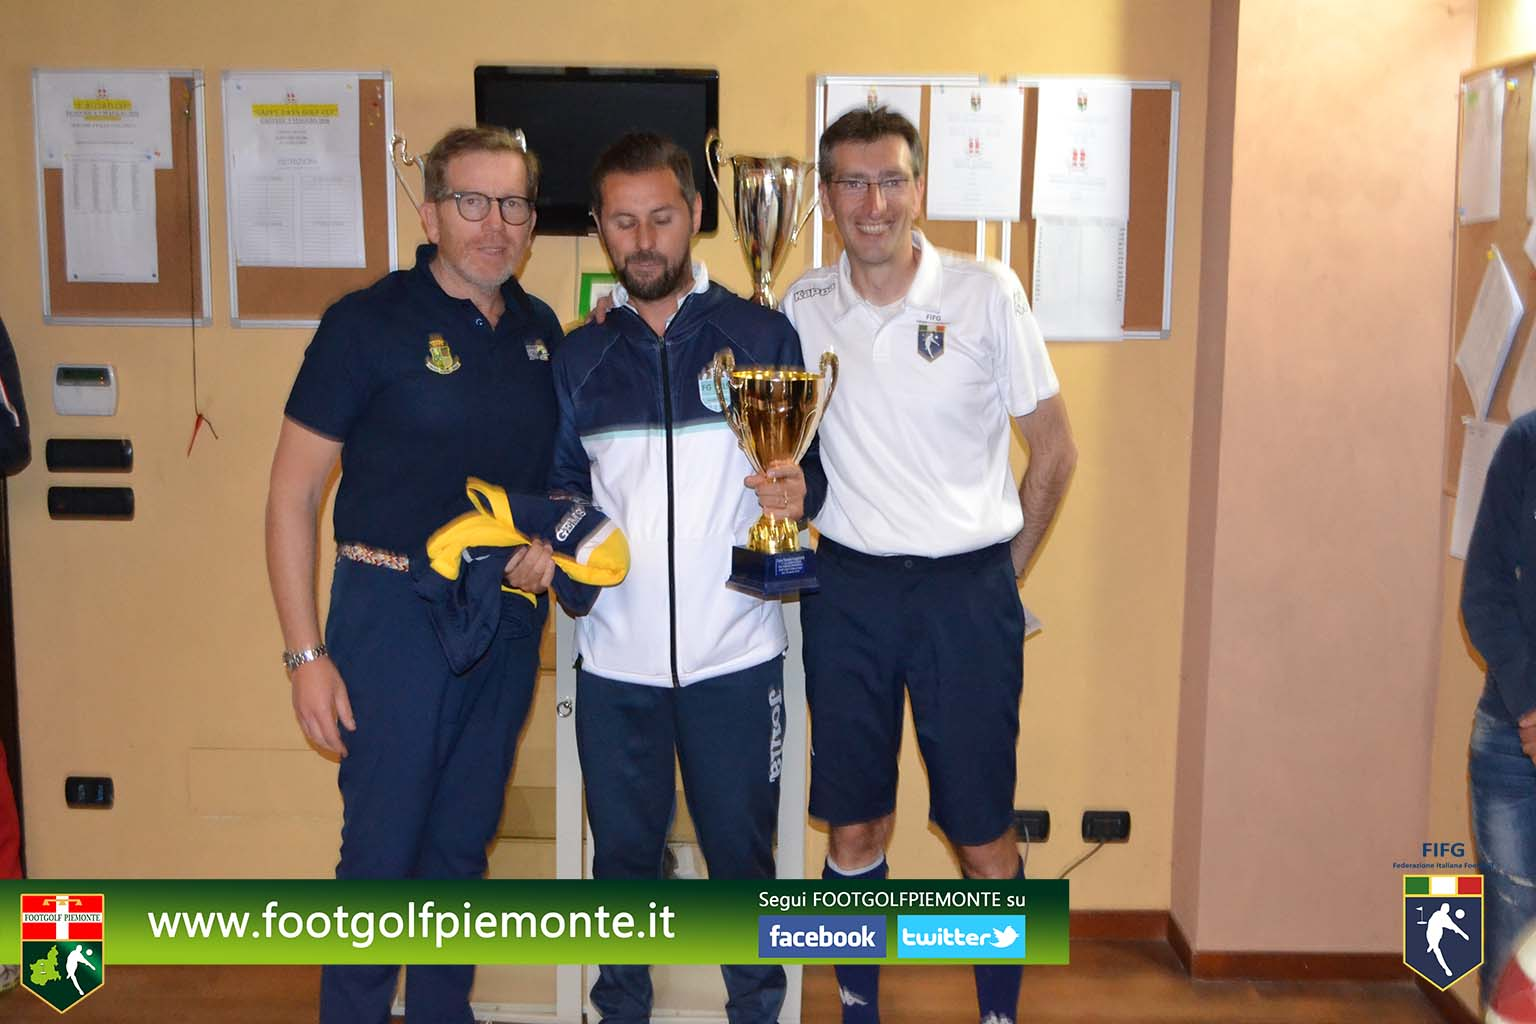 FOTO 9 Regions' Cup Footgolf Piemonte 2016 Golf Città di Asti (At) 30apr16-135